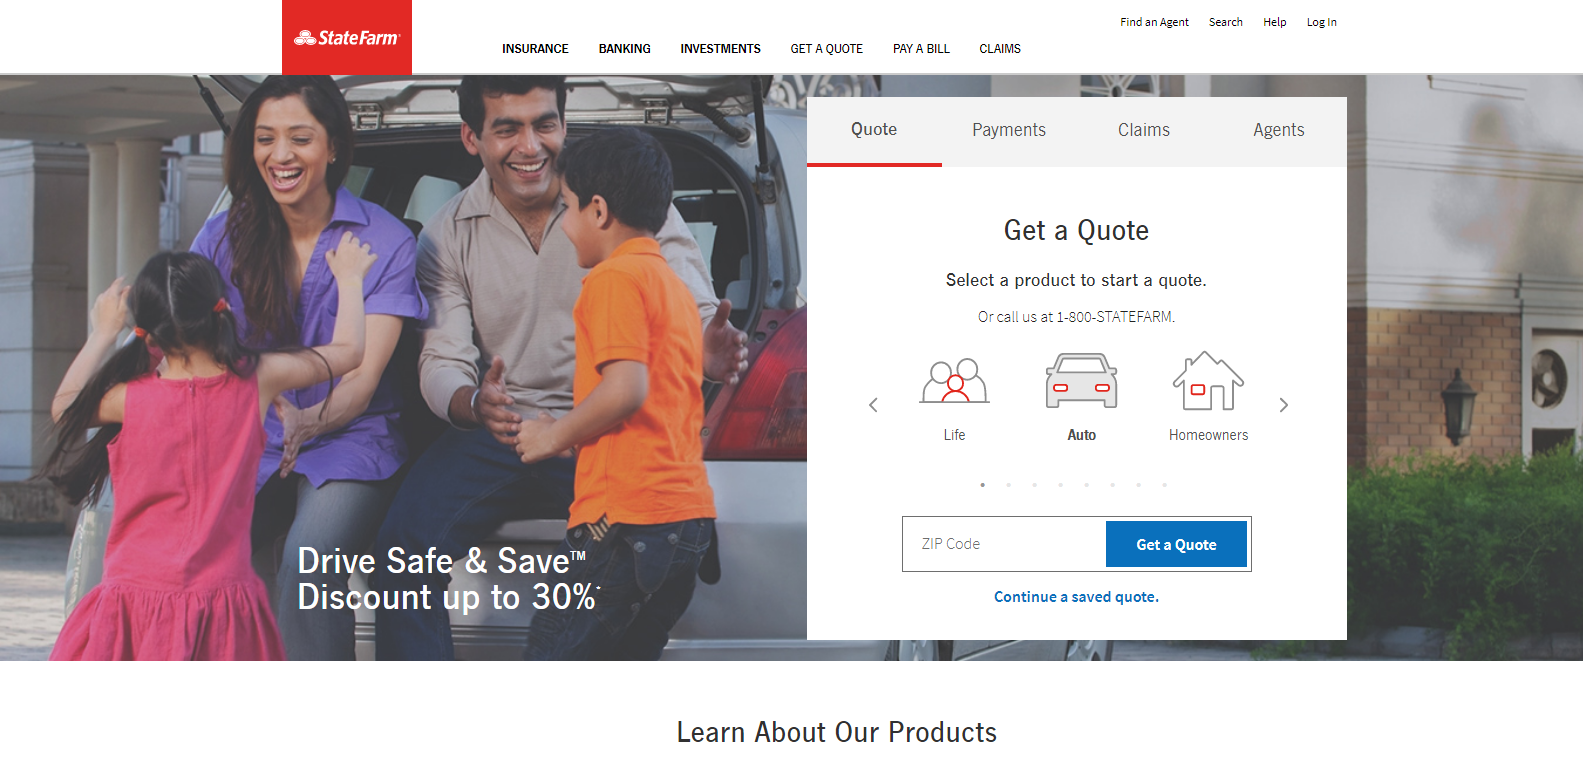 State Farm website home page